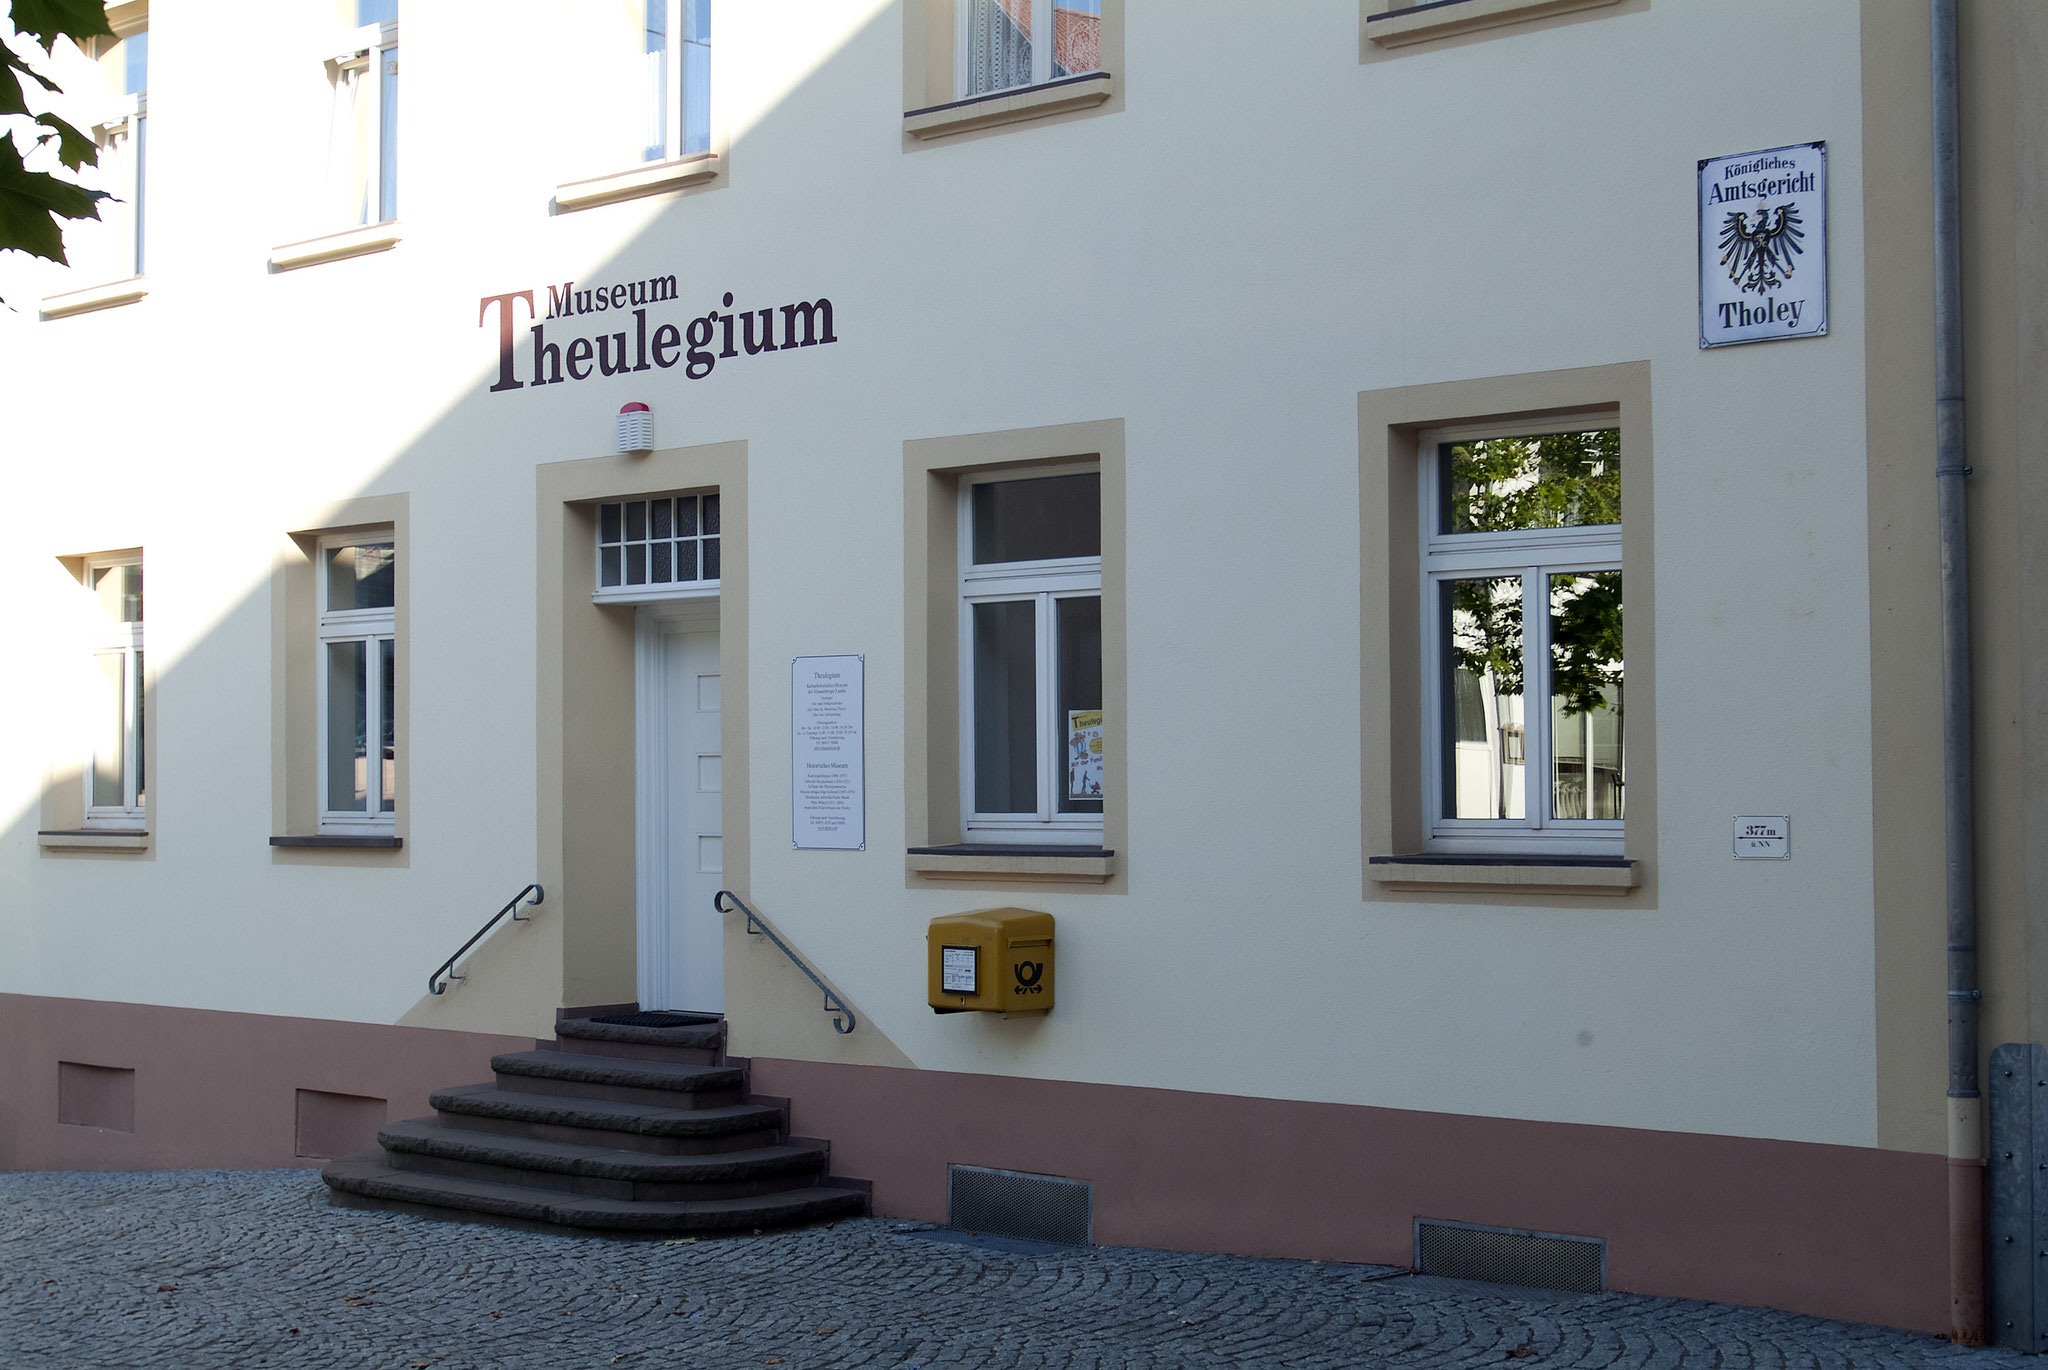 Das Museum Theulegium in Tholey